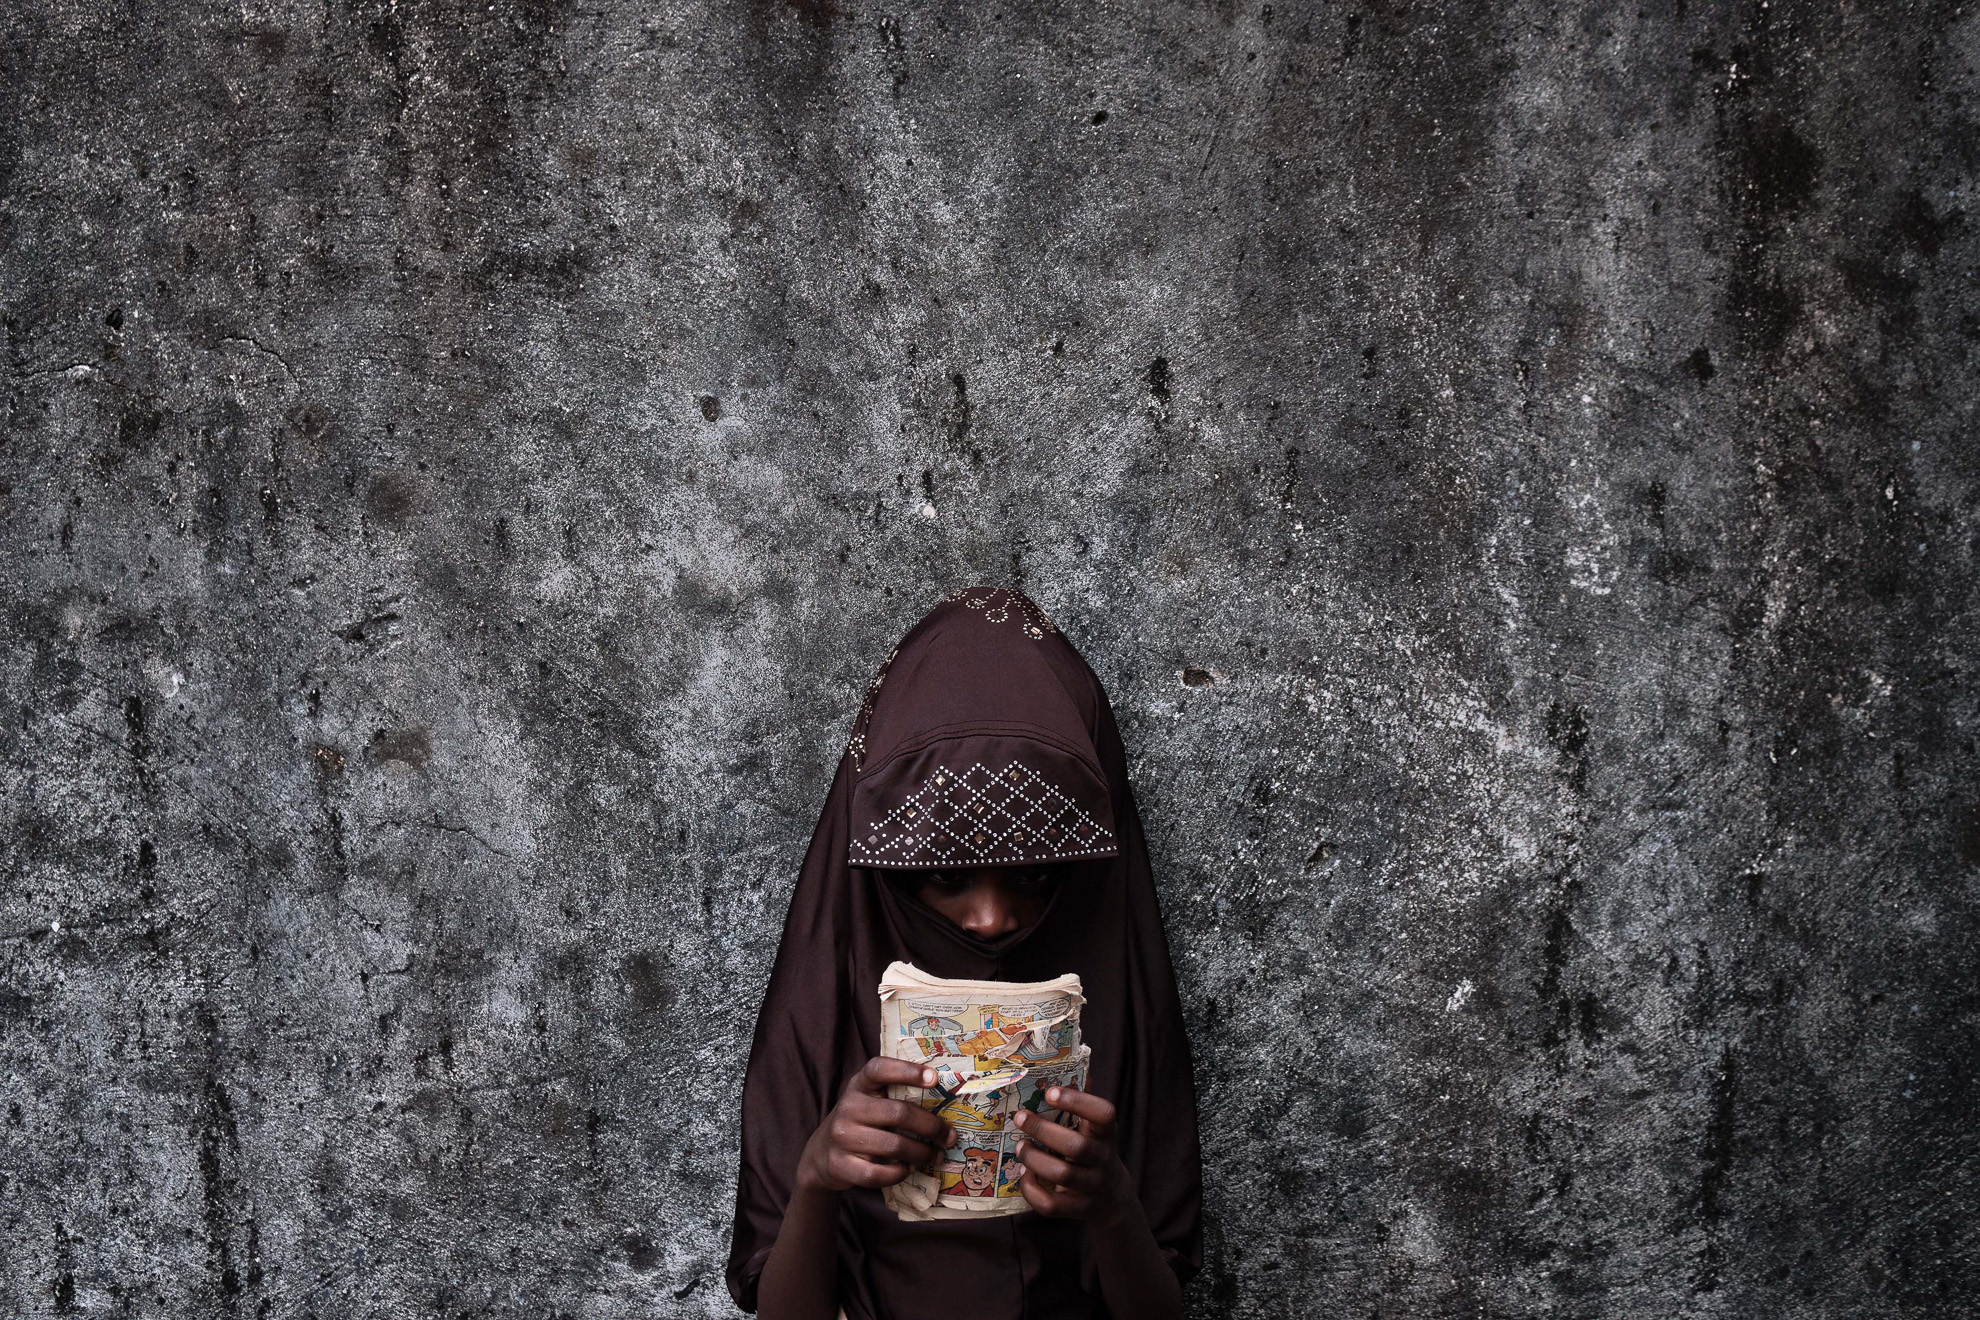 Fatimah is 6 years old, born in Boko Haram captivity to a mother who died during a raid. She spents time at her extended family home in Borno North East Nigeria, scanning pictures of a comic book 'Archie', hoping that one day she will go to school.